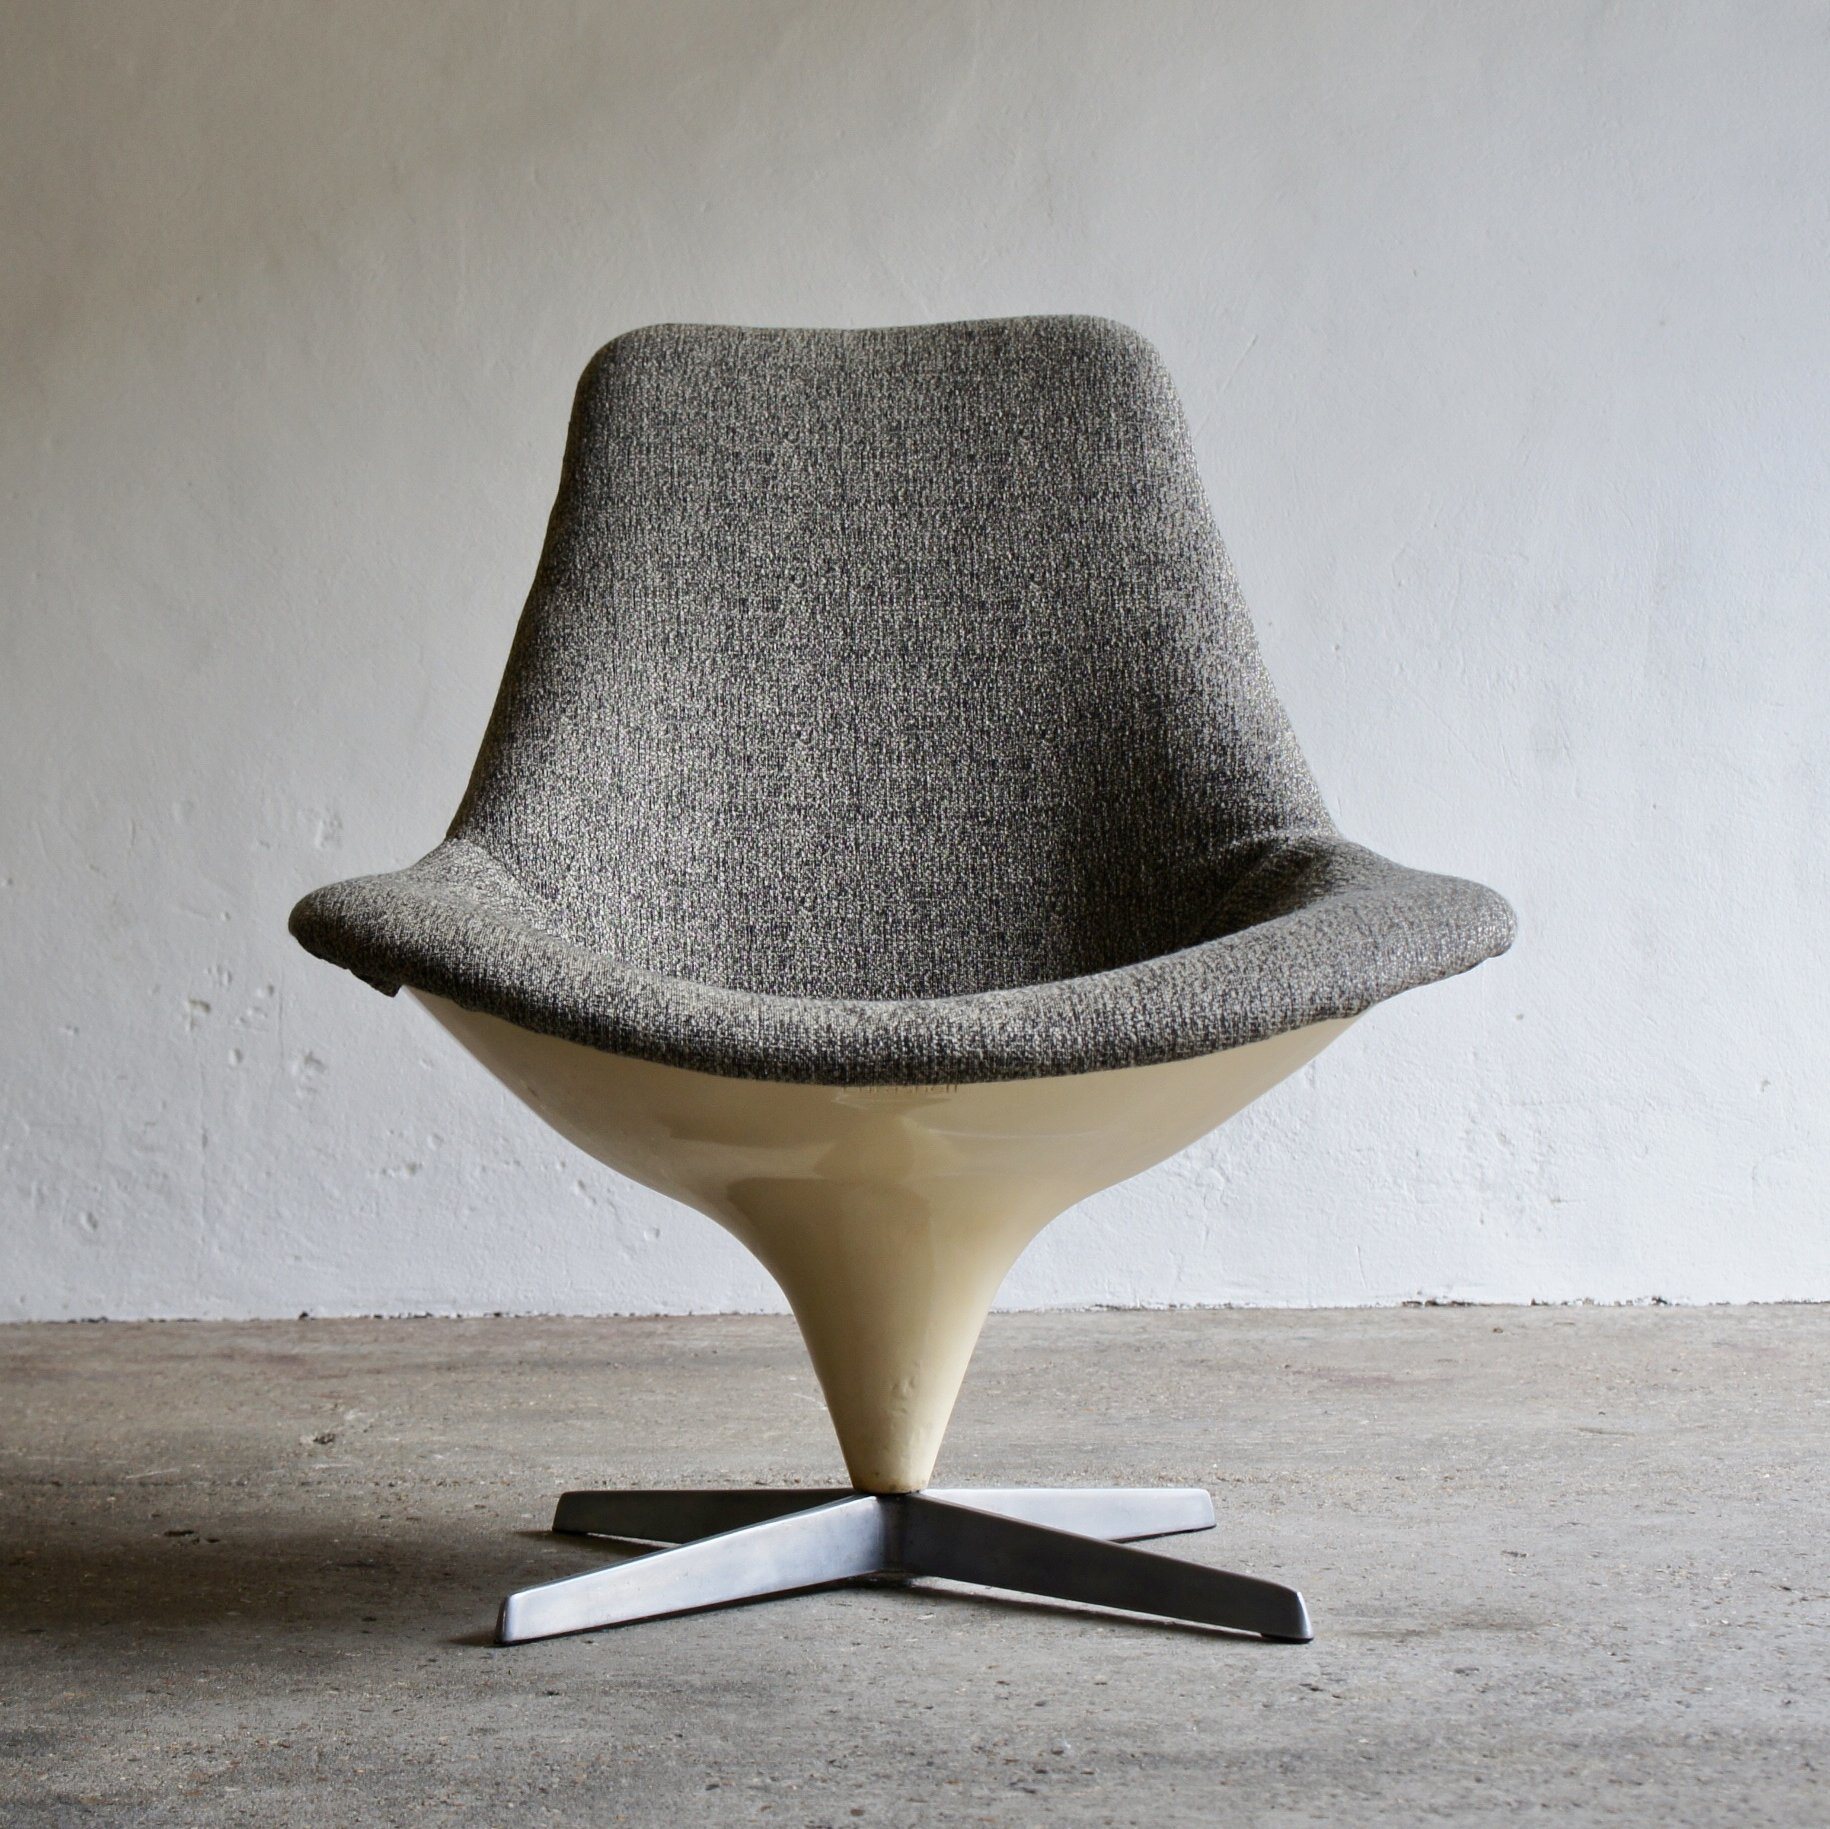 Remarkable 1960S Lurashell Swivel Egg Chair Gmtry Best Dining Table And Chair Ideas Images Gmtryco